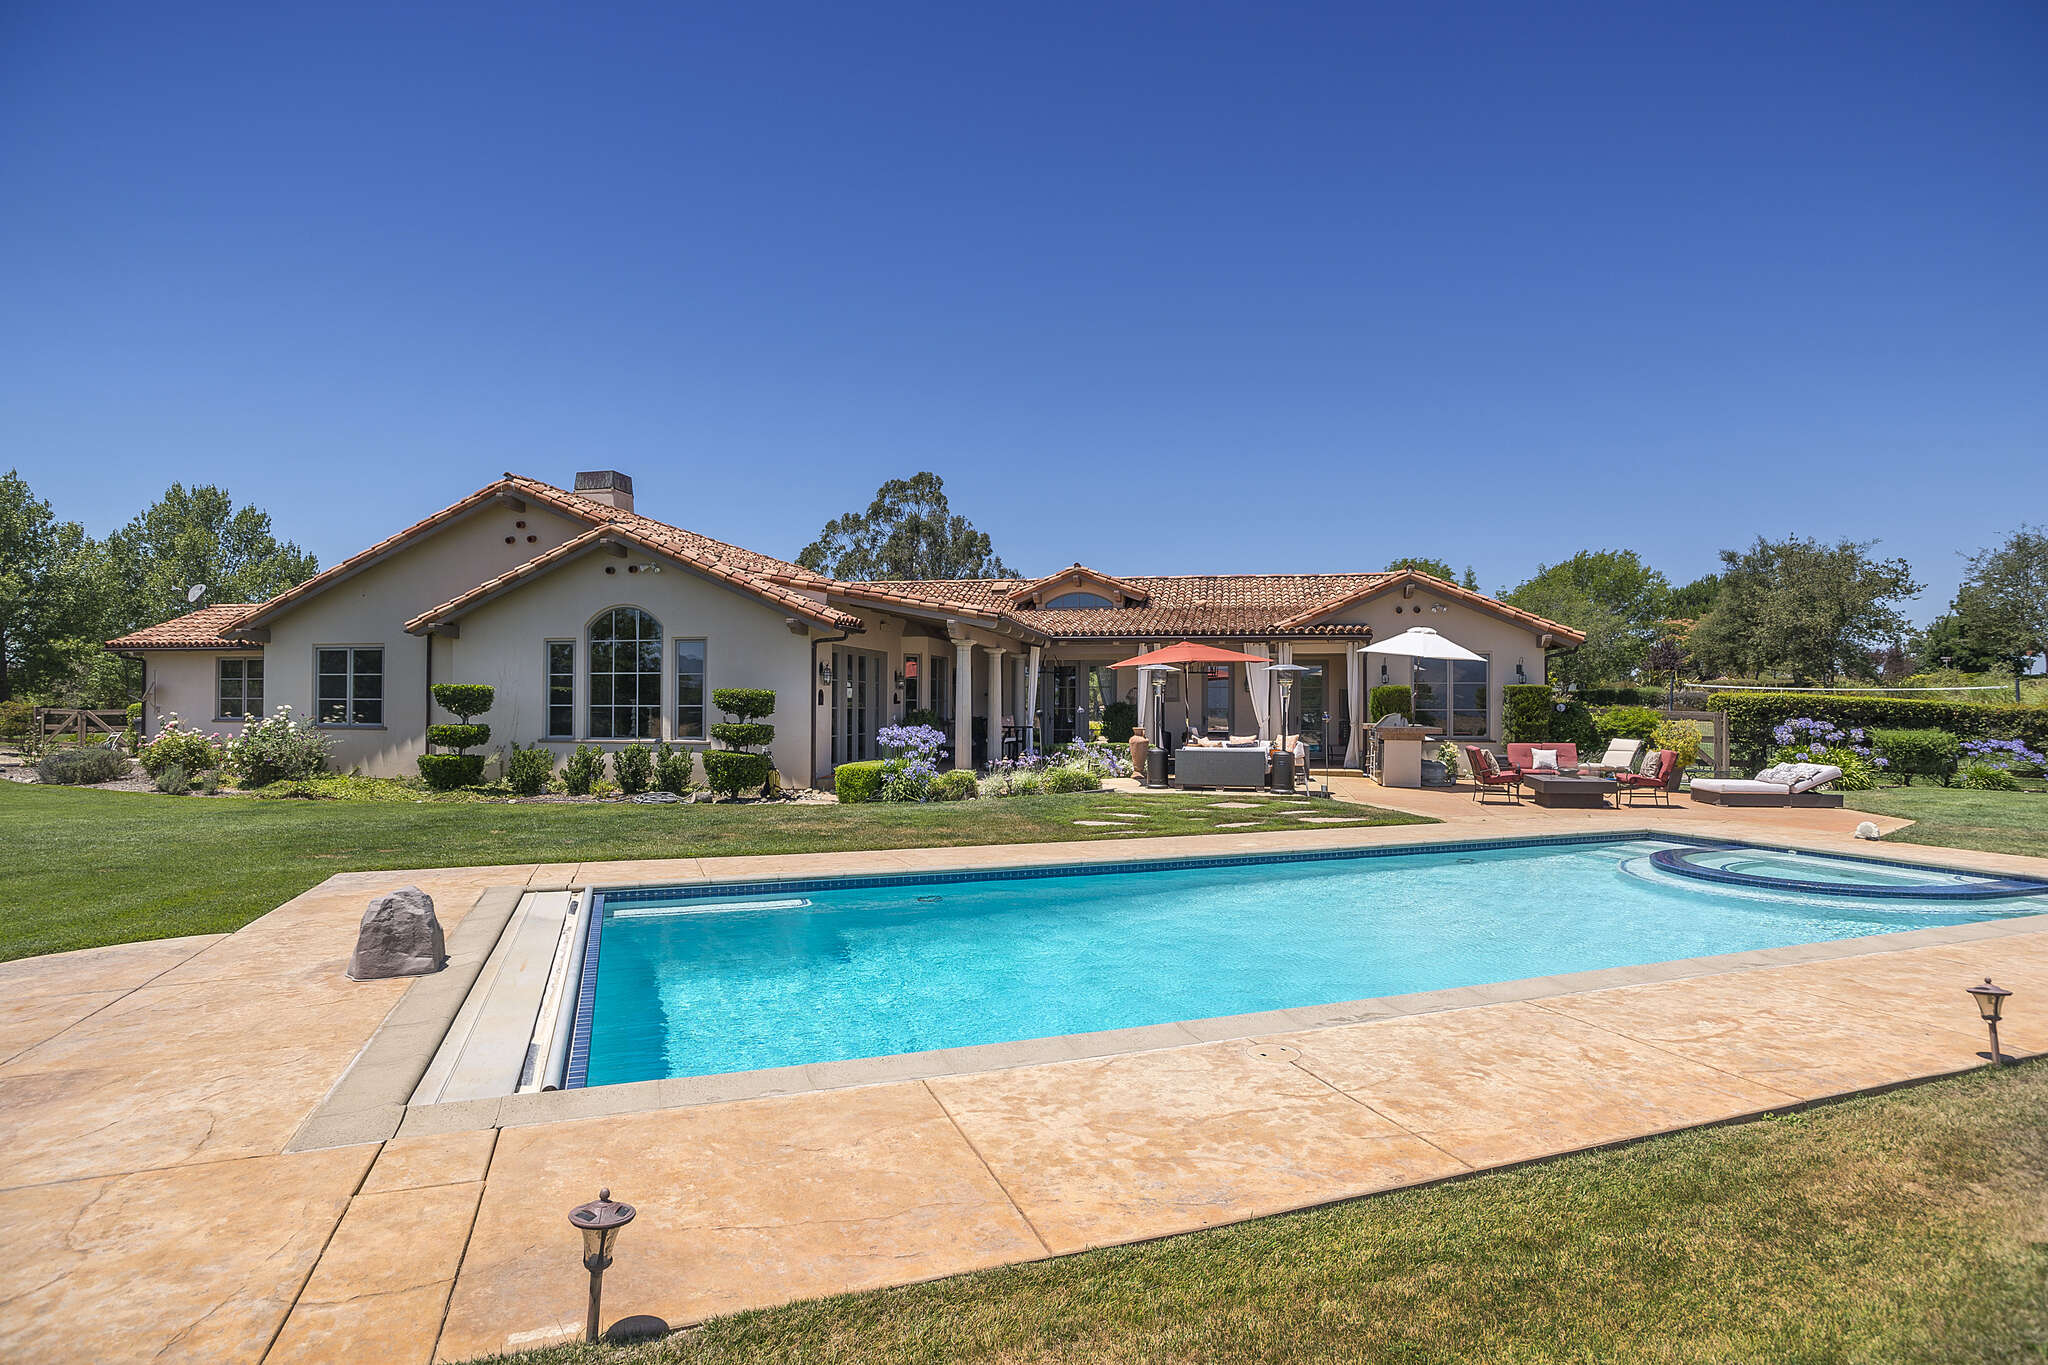 Single Family for Sale at 2040 Dermanak Drive Solvang, California 93463 United States